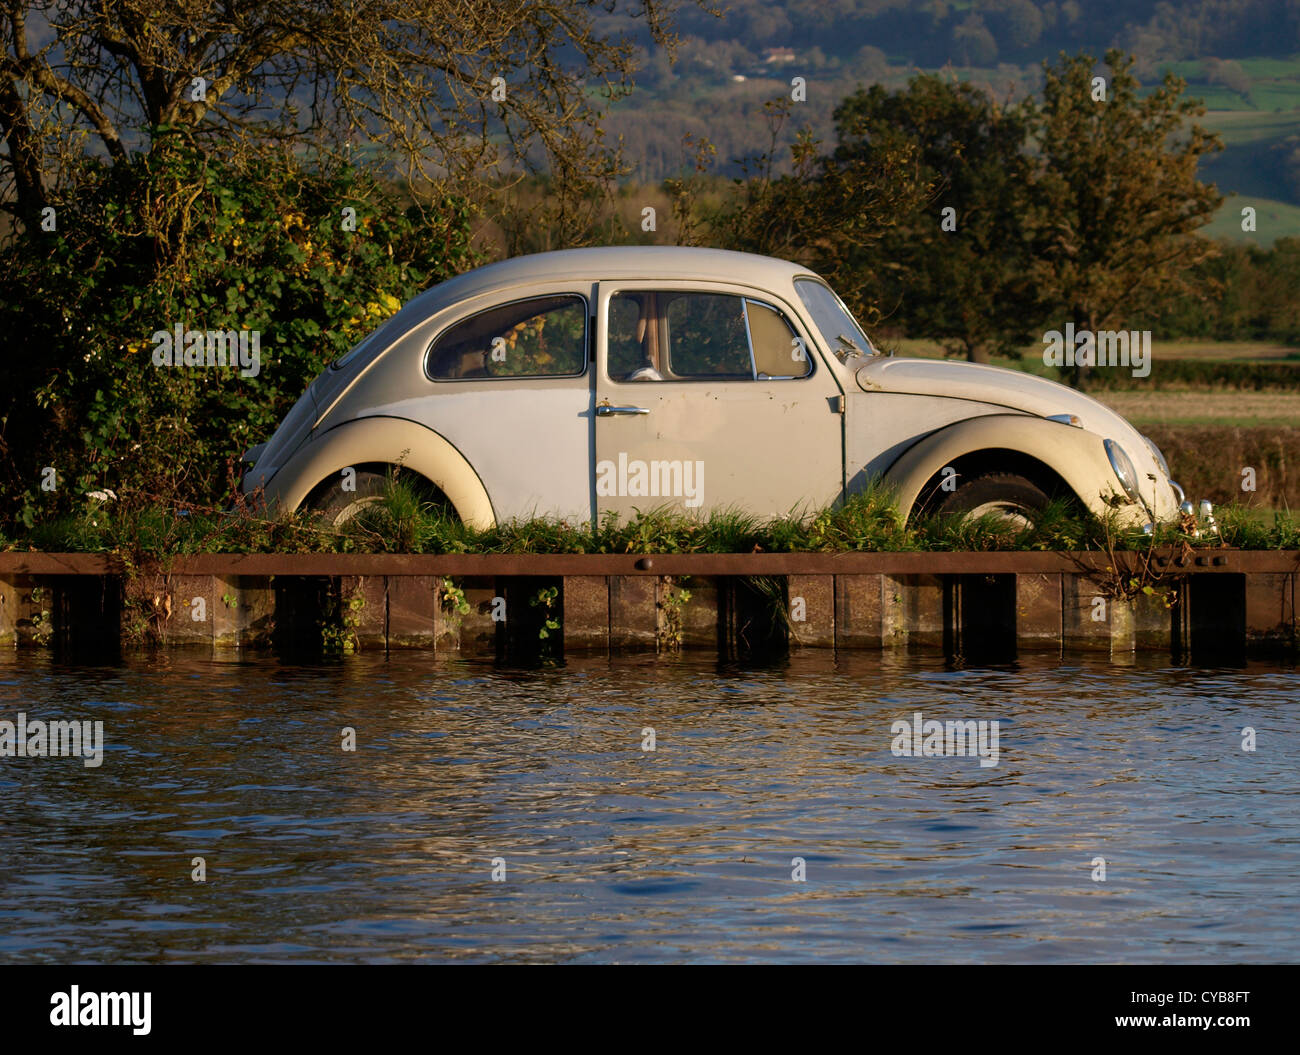 Classic VW Beetle parked next to a canal, UK - Stock Image